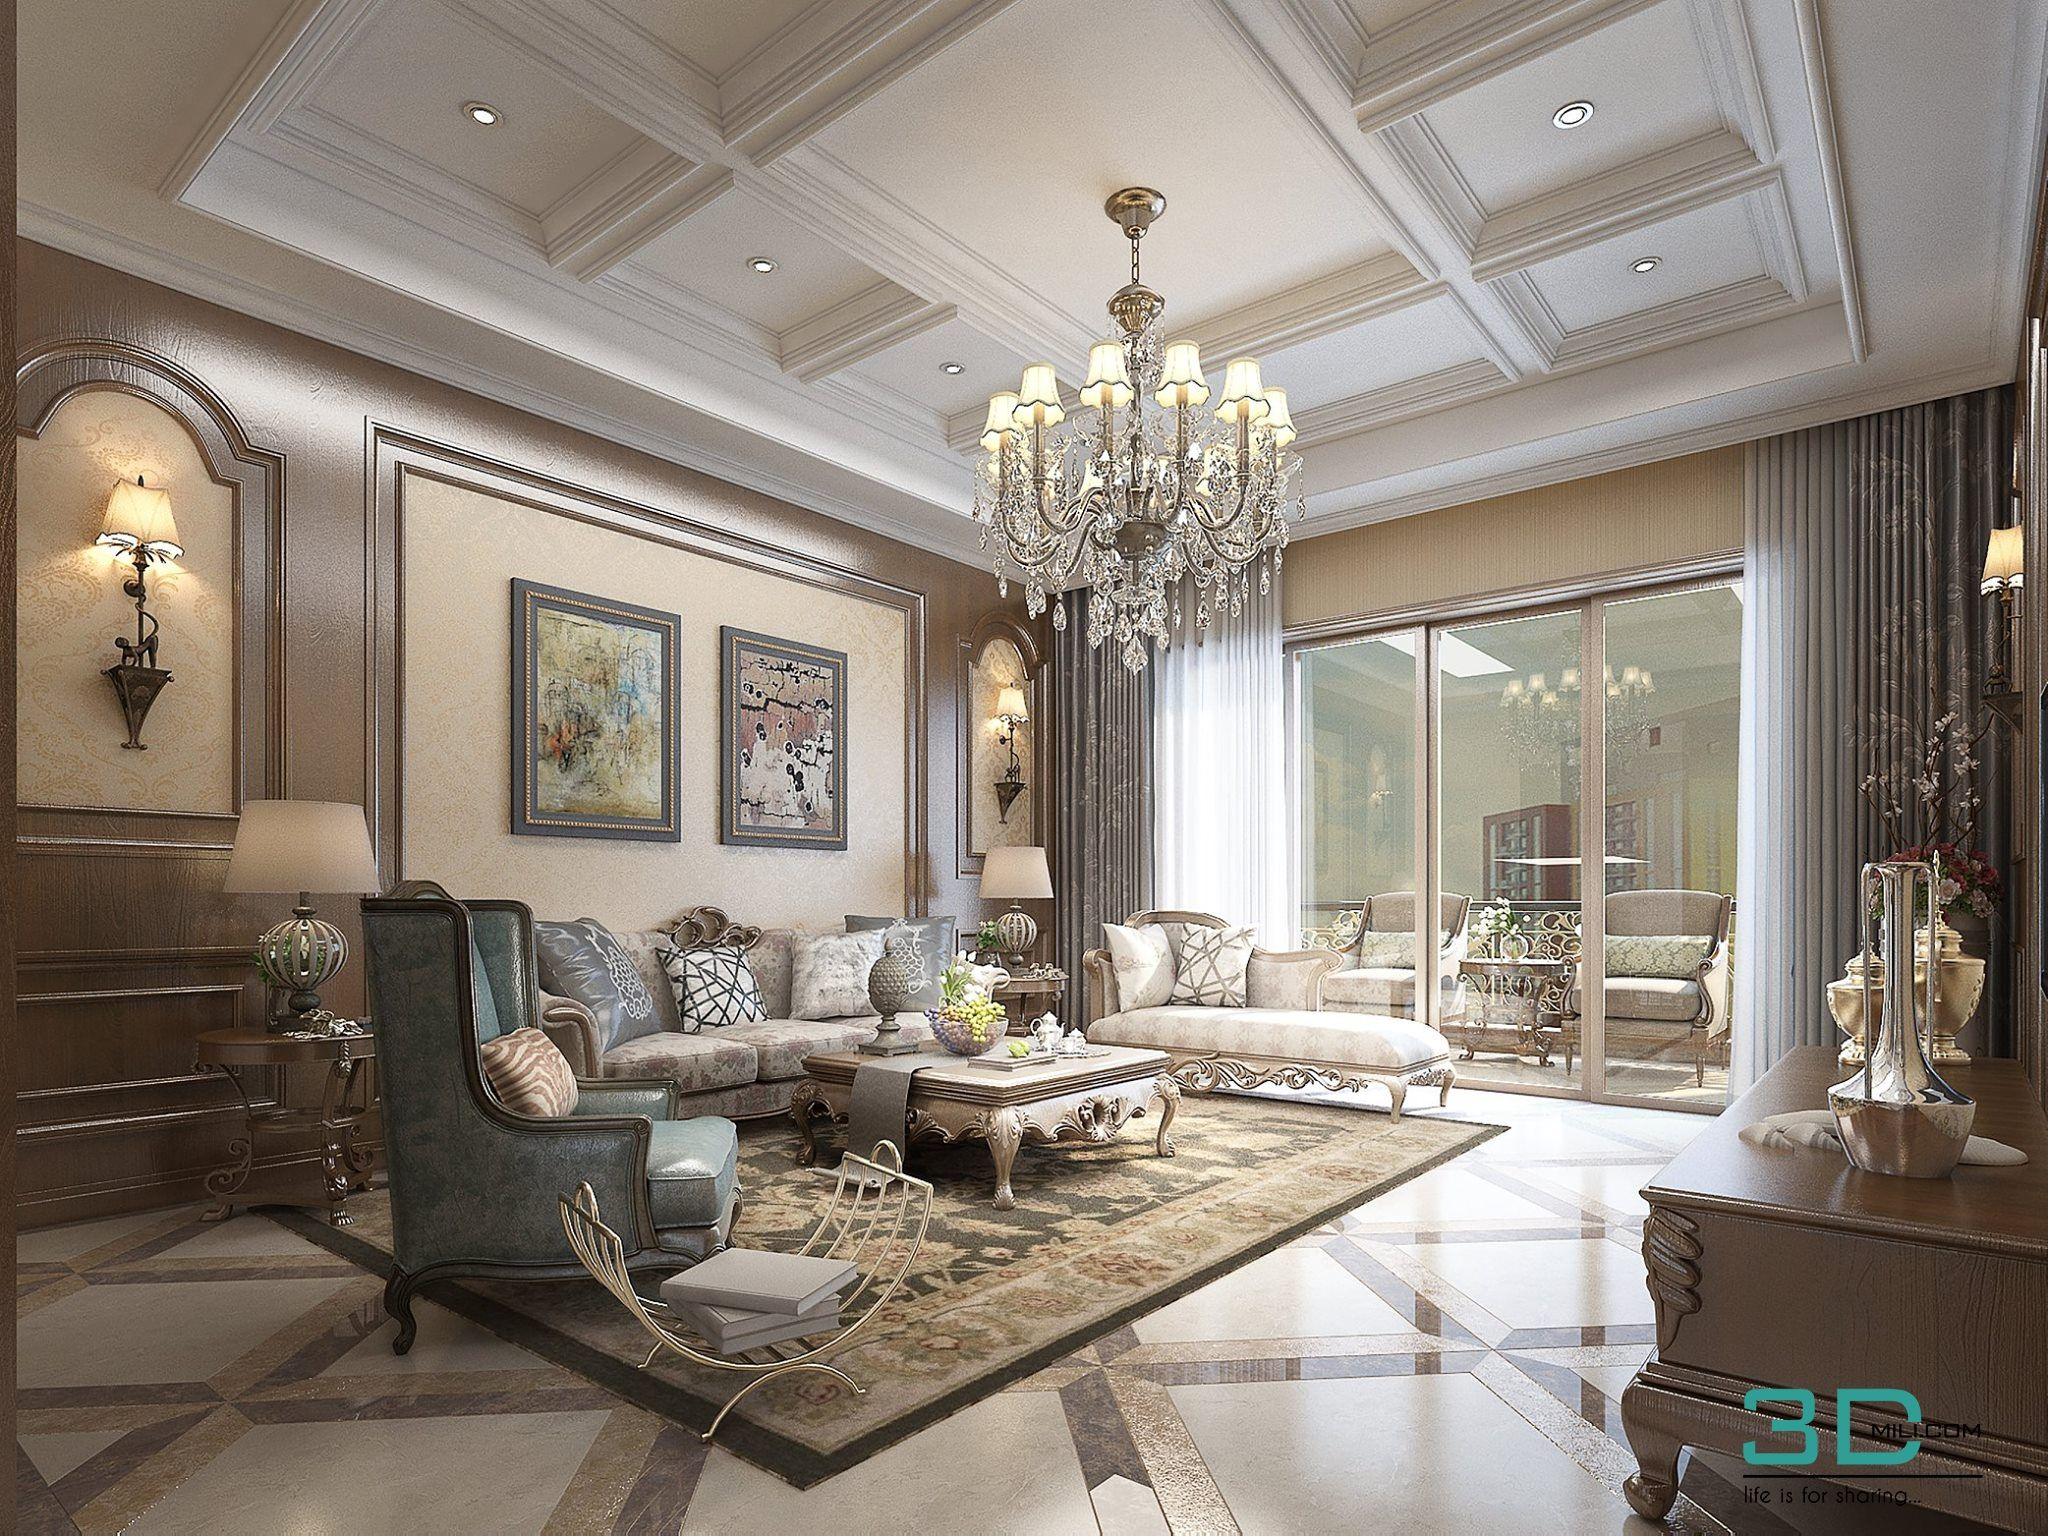 30 Living Room 30 3dsmax File Free Download Living Room